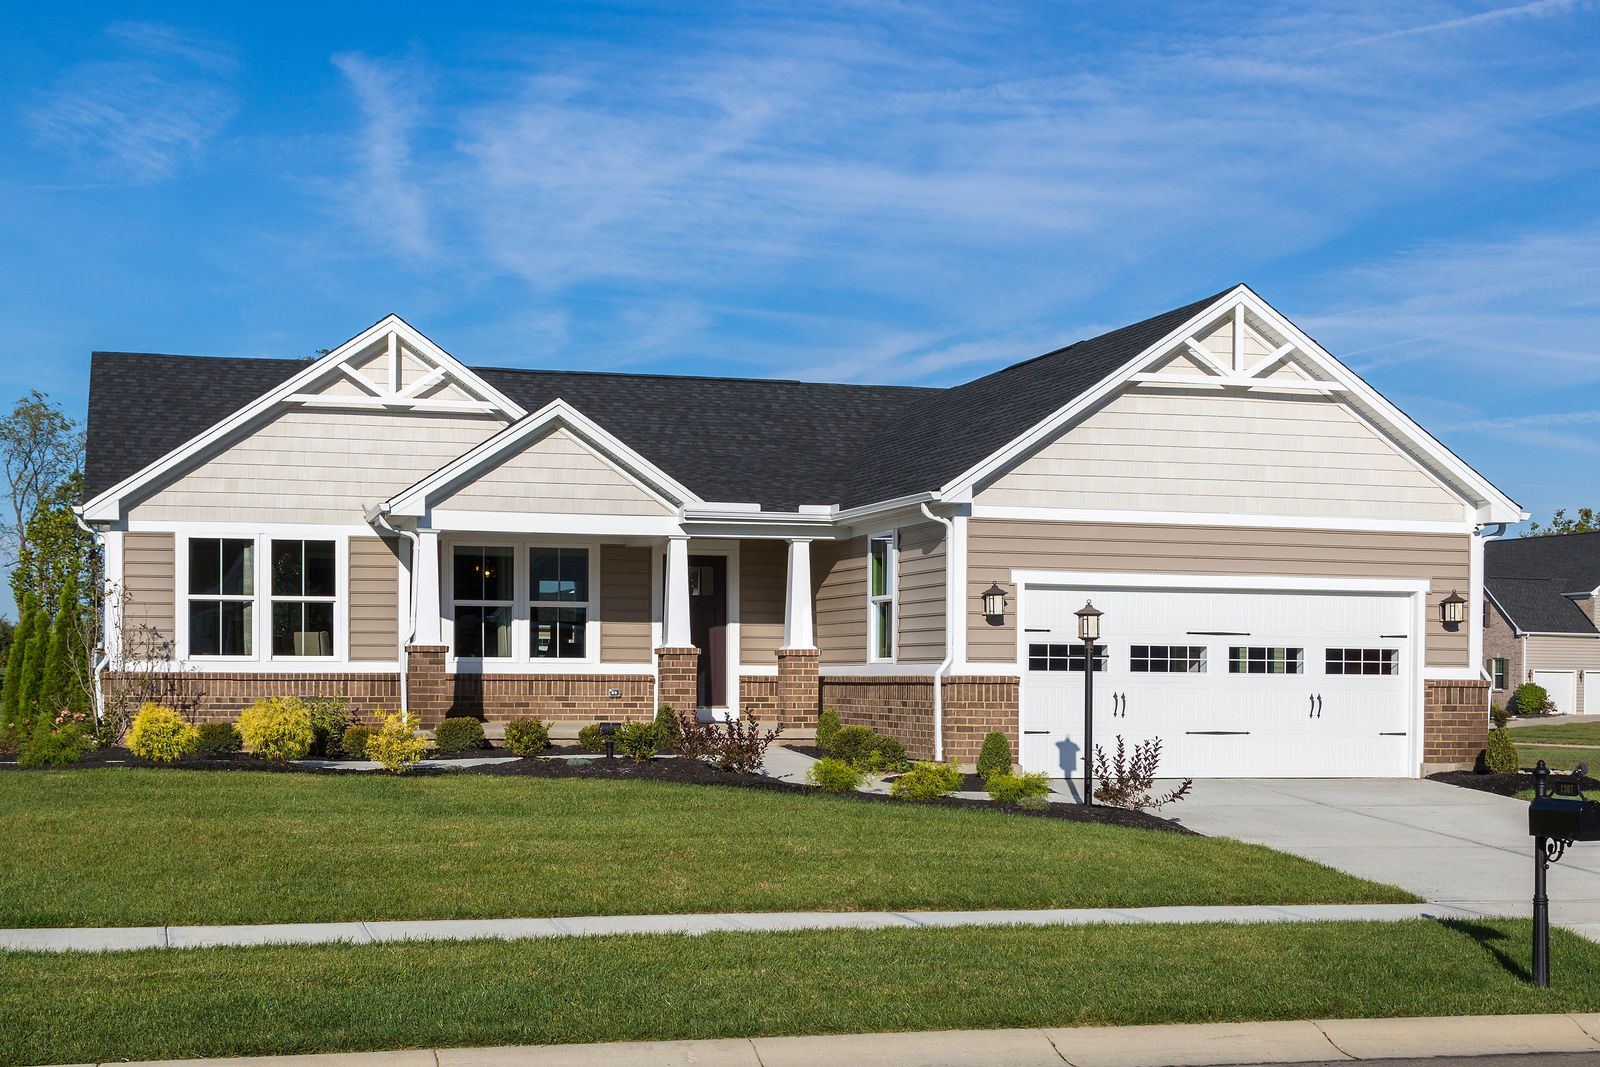 Welcome to Brookview Farms:Ryan Homes' only main level living community in Jackson Township. Minutes from Cranberry Twp. just off I-79 and Rt 19.Schedule yourappointmenttoday.